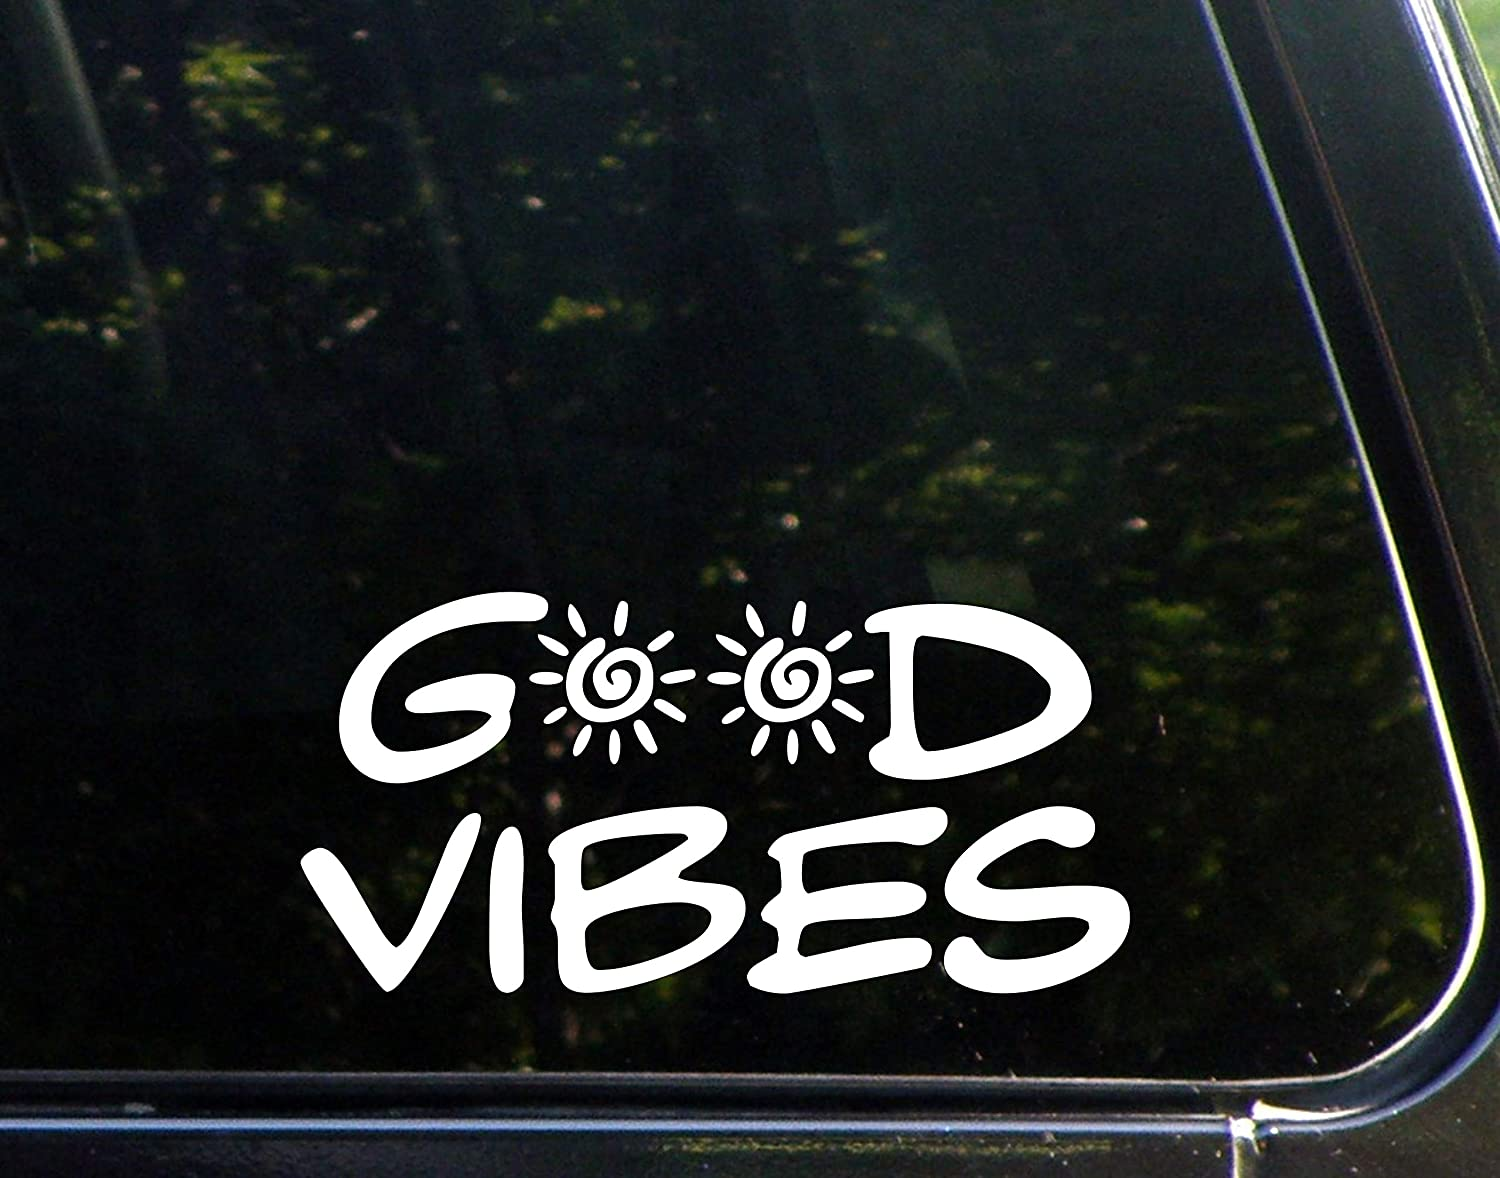 Amazon com good vibes 8 x 4 vinyl die cut decals bumper stickers for windows cars trucks laptops etc automotive